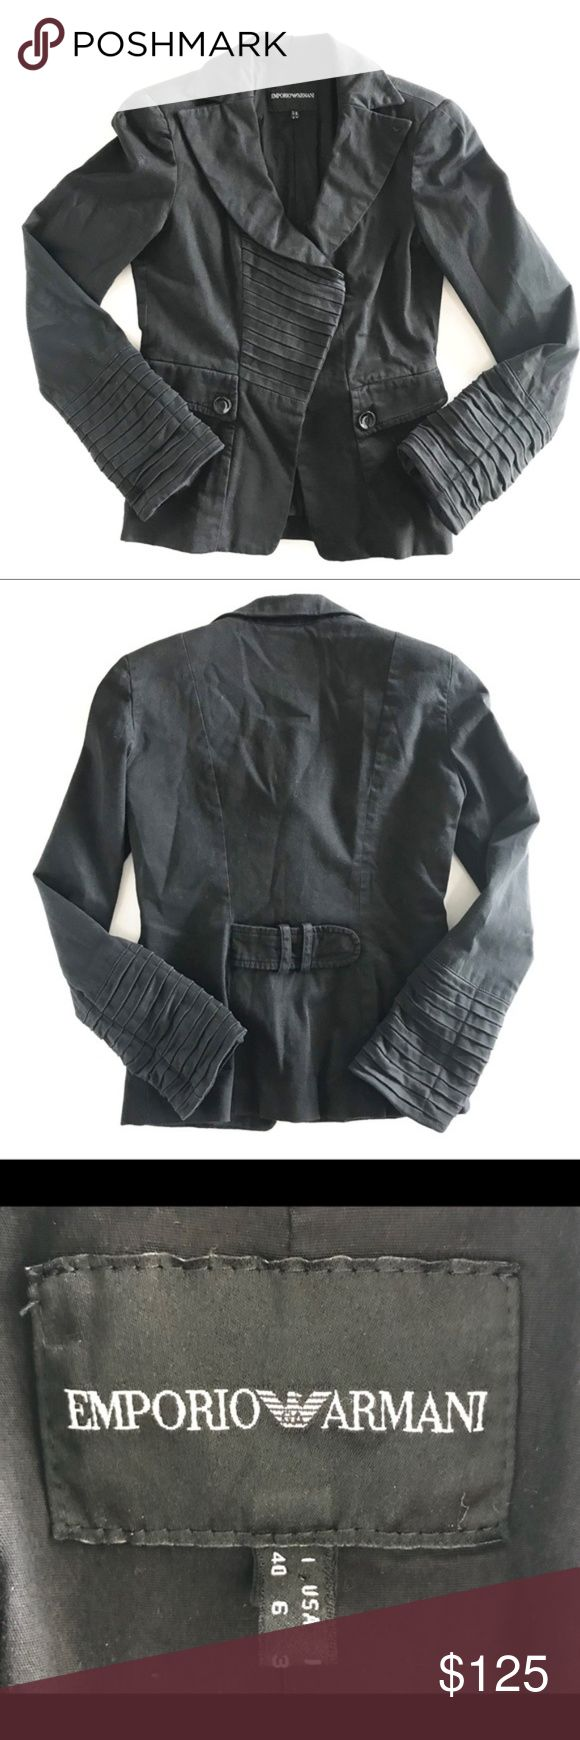 """Emporio Armani Black Moto Blazer Jacket 6 Emporio Armani Black Moto Blazer Jacket, Shoulder Pad attached, Medium weight, not to light, and not too heavy, makes for a perfect layer. Size 6, EUC, Smoke Free Home   Measurements are approx.   Length: 22"""" Chest: 34"""" Sleeve: 24"""" Emporio Armani Jackets & Coats Blazers"""